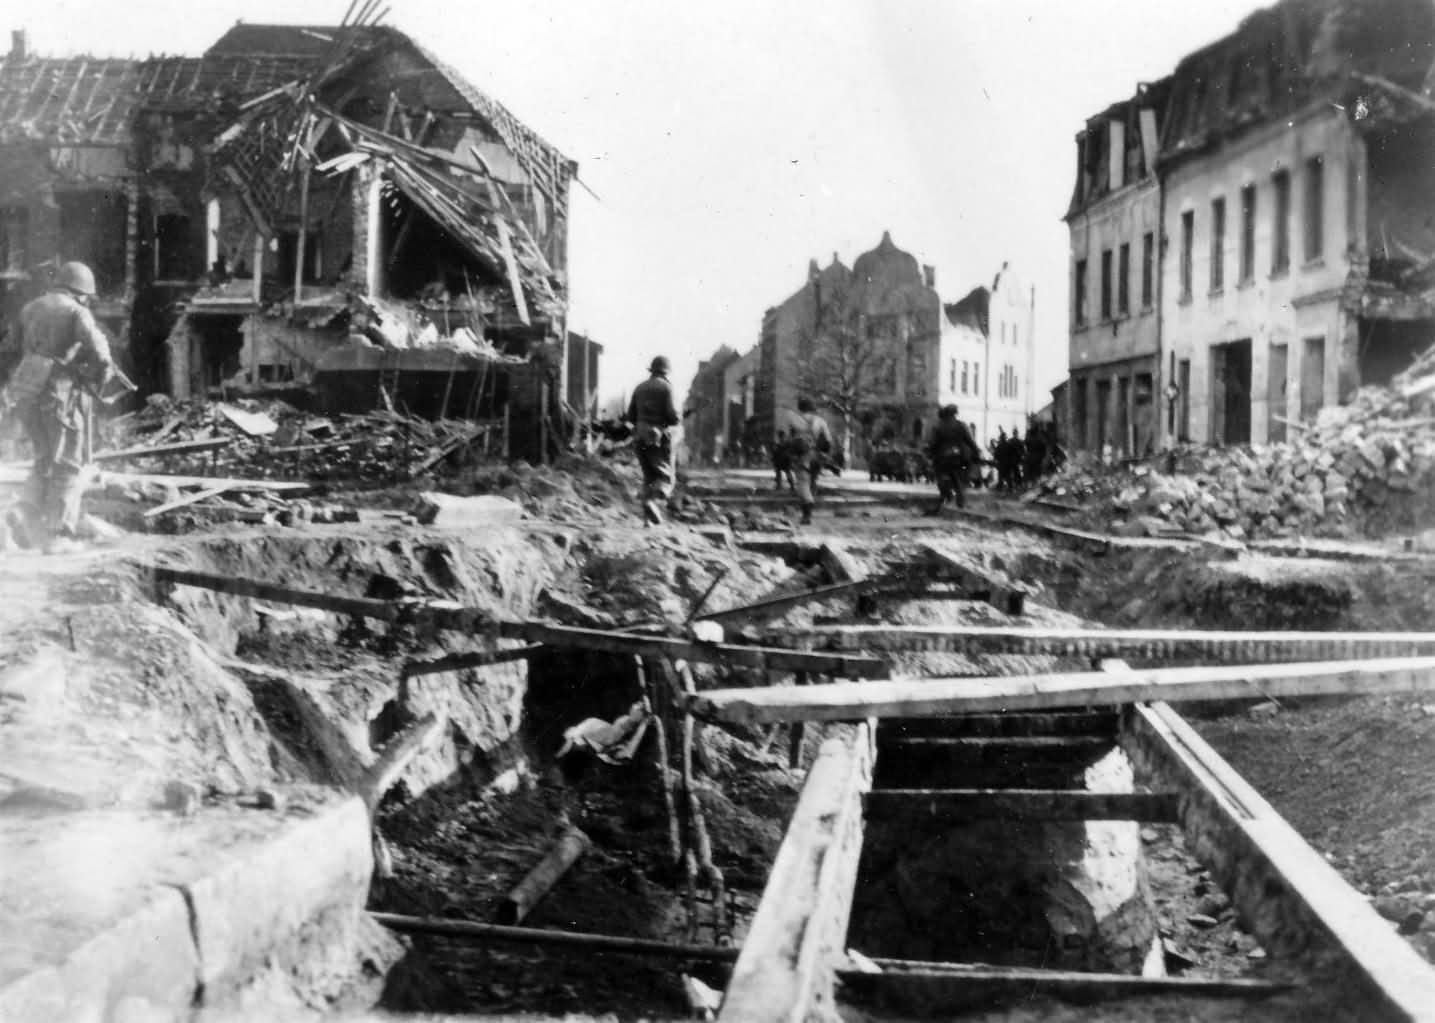 a history of the events following world war ii in germany European history/europe: 1945 to present  after world war ii, germany was divided into zones according to agreements reached between the  european history:.